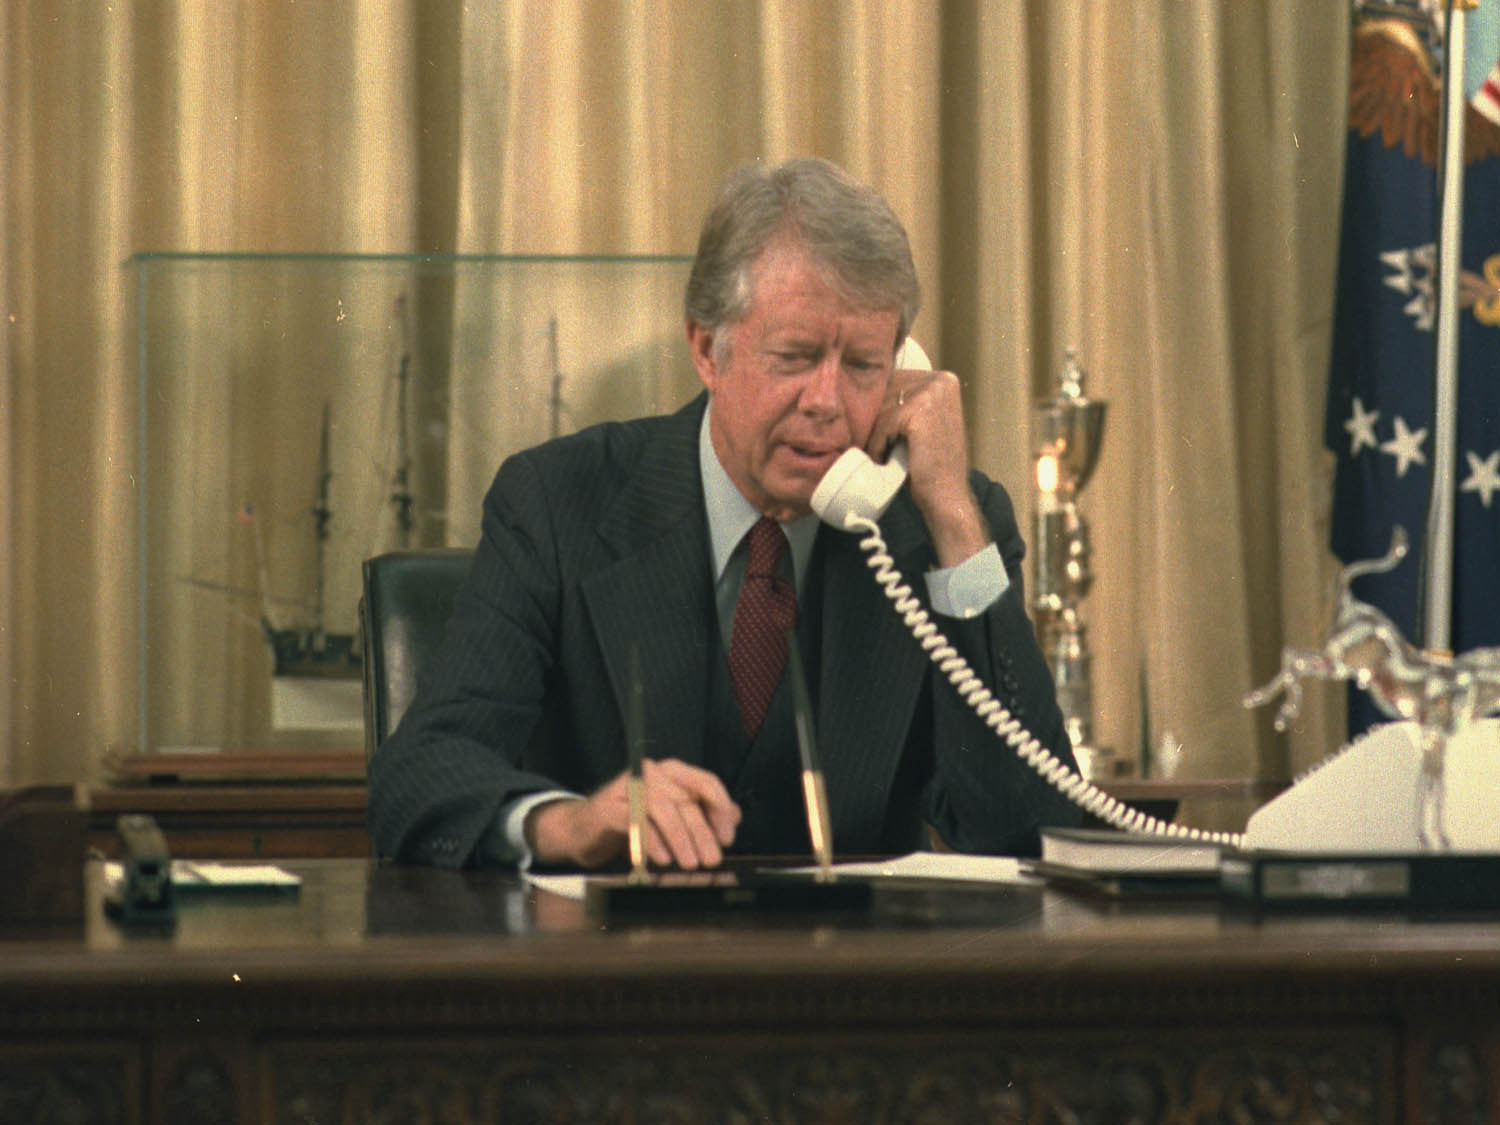 jimmy carter oval office. Jimmy Carter On The Telephone In Oval Office V